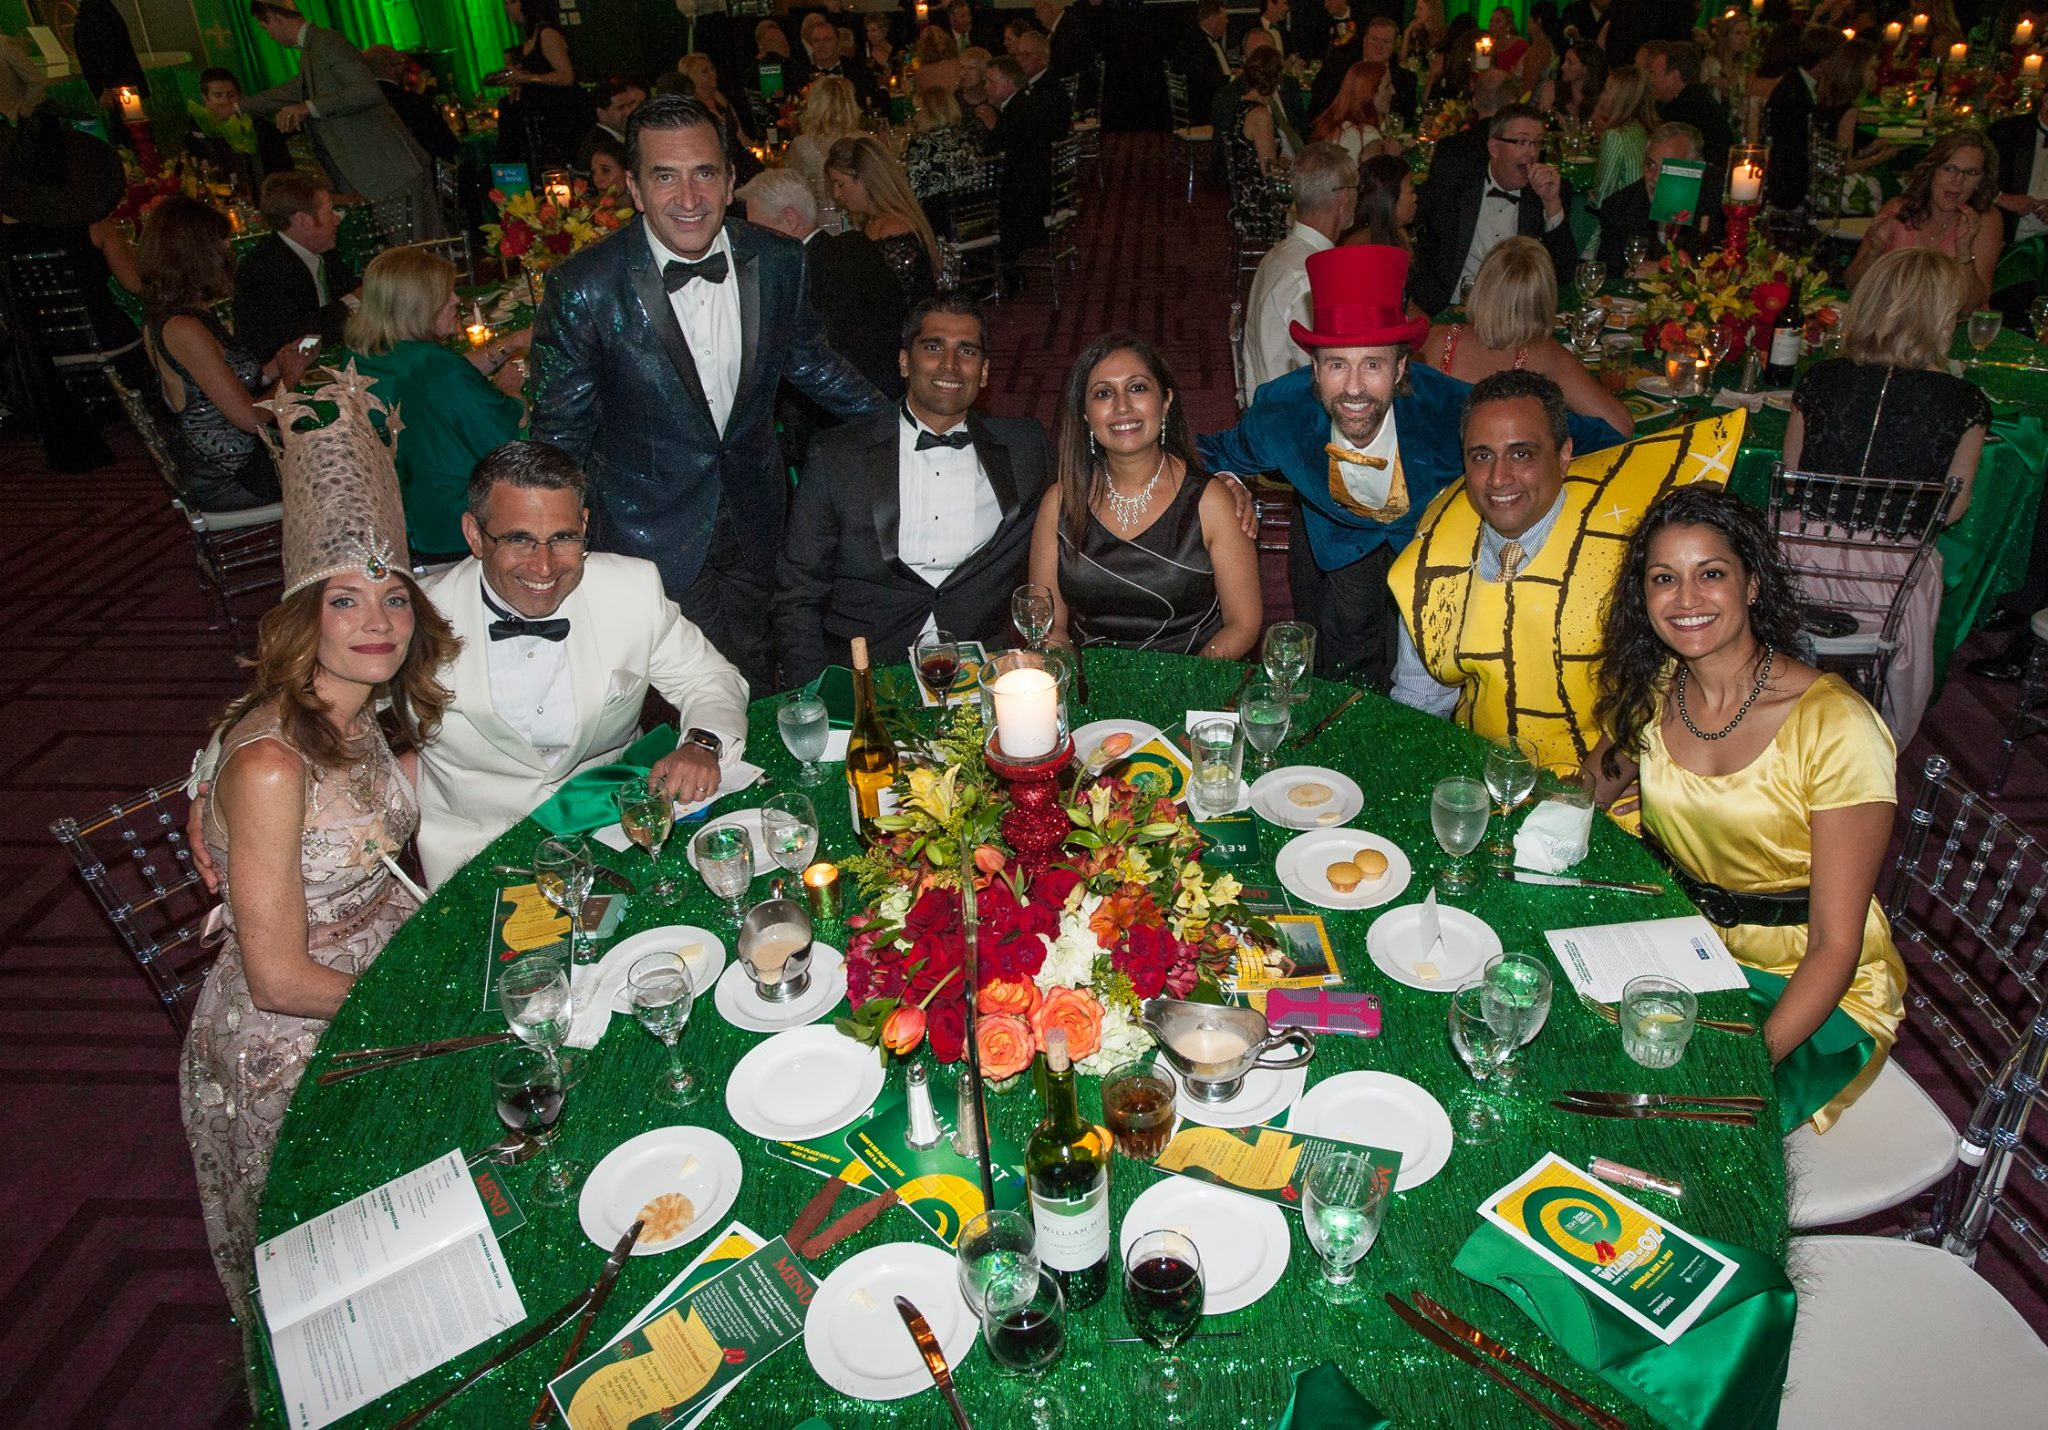 TGH Foundation Wizard of Oz gala table group photo.